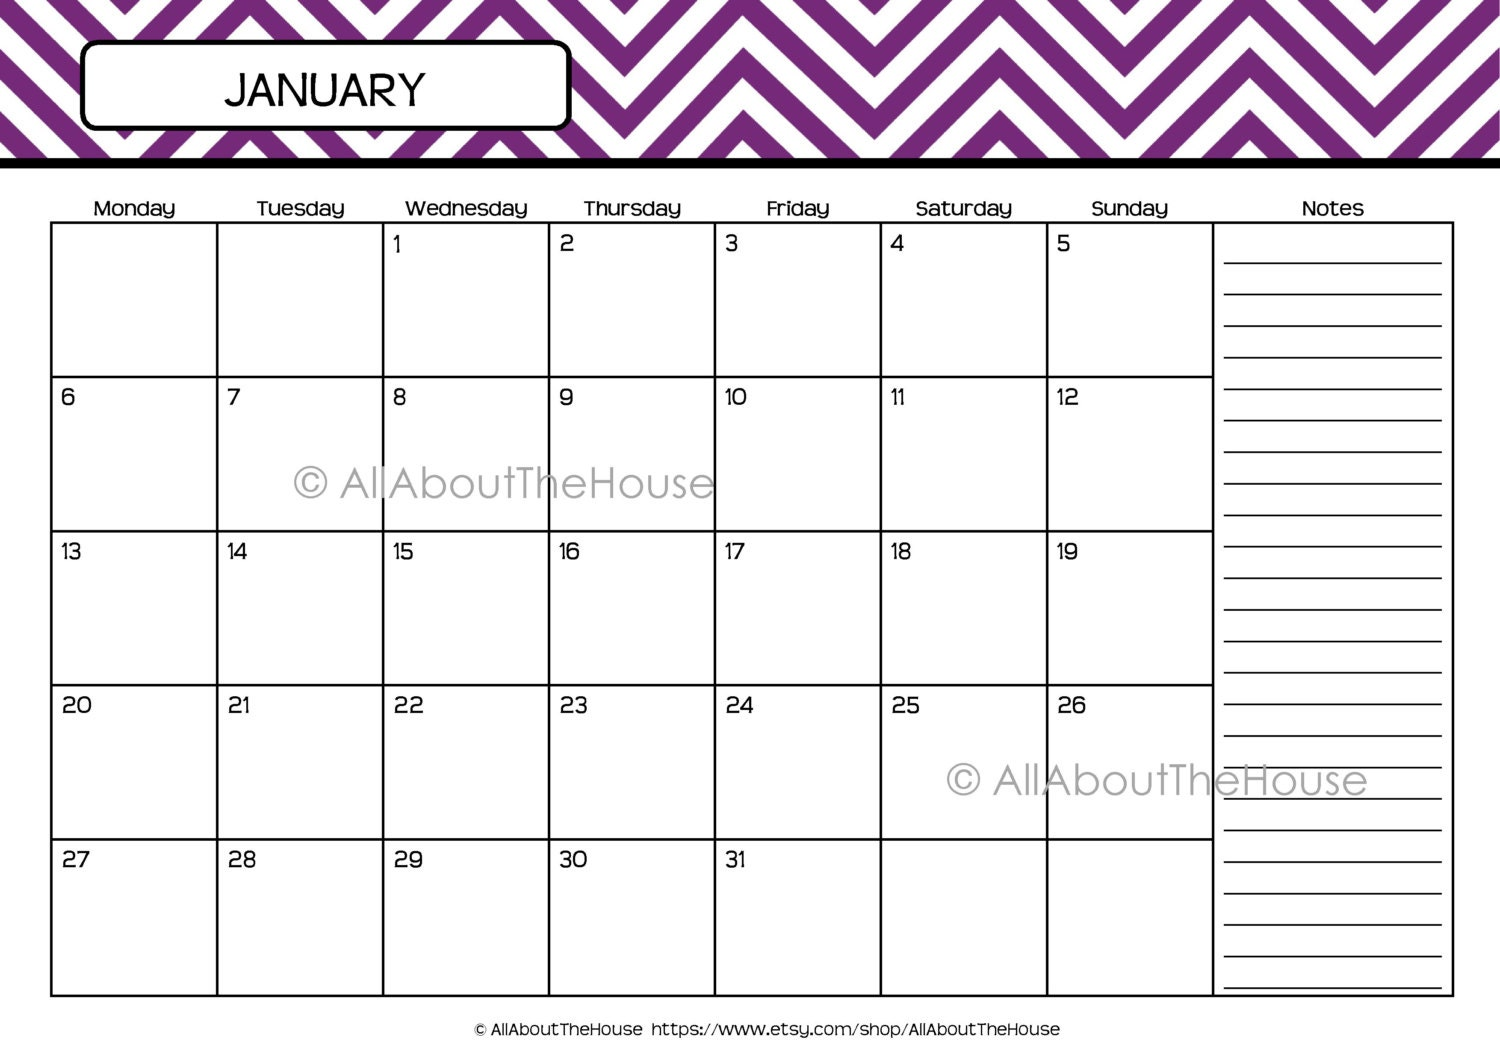 Comfortable 1 Year Experience Resume In Java J2ee Tall 10 Half Hexagon Template Round 1st Time Resume Templates 2010 Calendar Template Old 2015 Calendar Printable Template Coloured2015 Calendar Year Template June 2016 Calendar Printable Template \u2013 2017 Printable Calendar